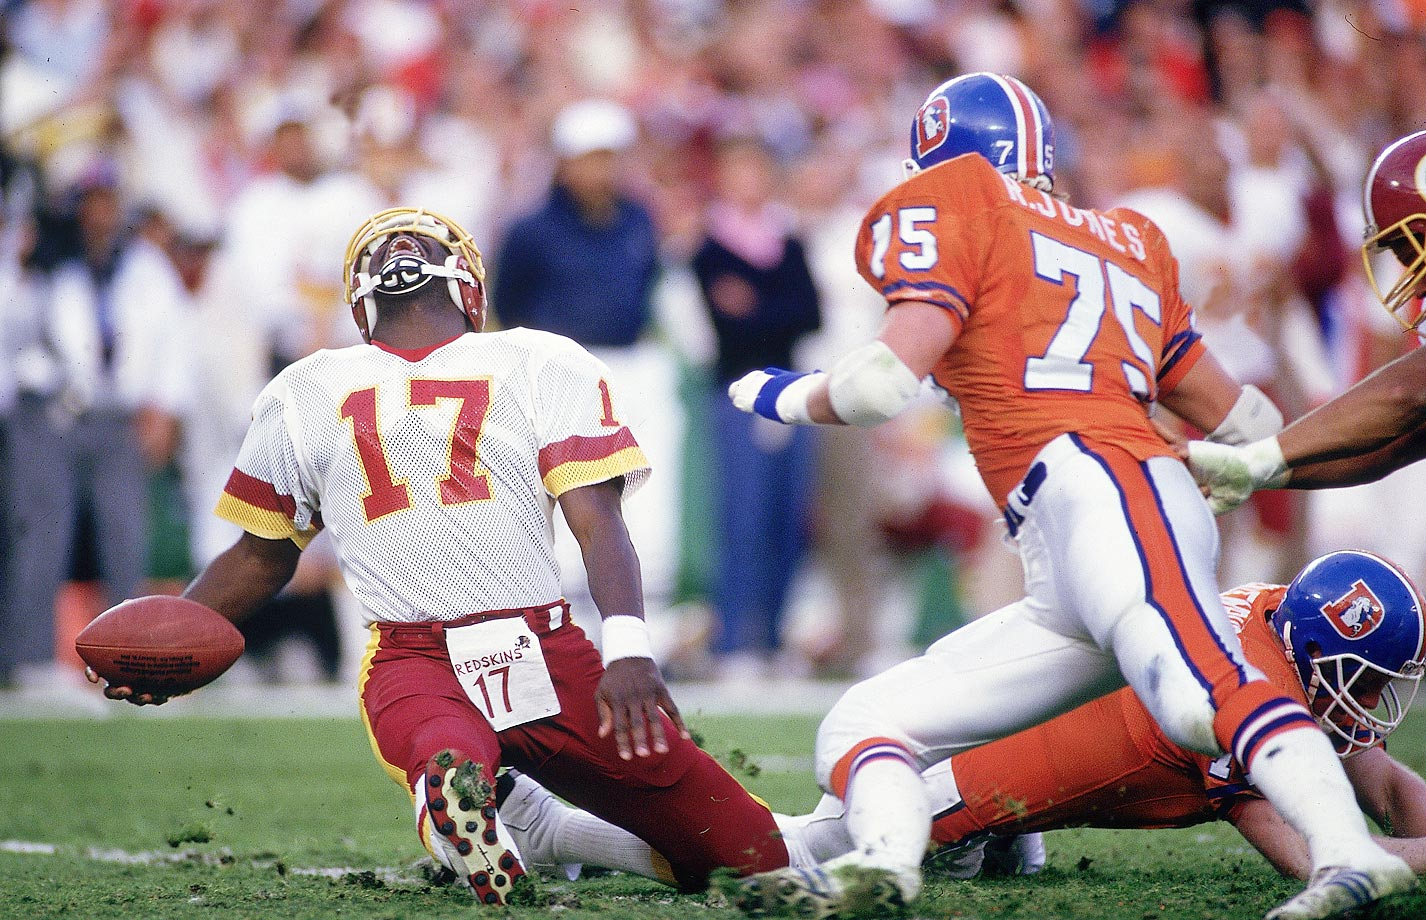 Doug Williams overcame this gruesome hit to finish with four touchdown passes and MVP honors as the Redskins overcame a 10-0 deficit.